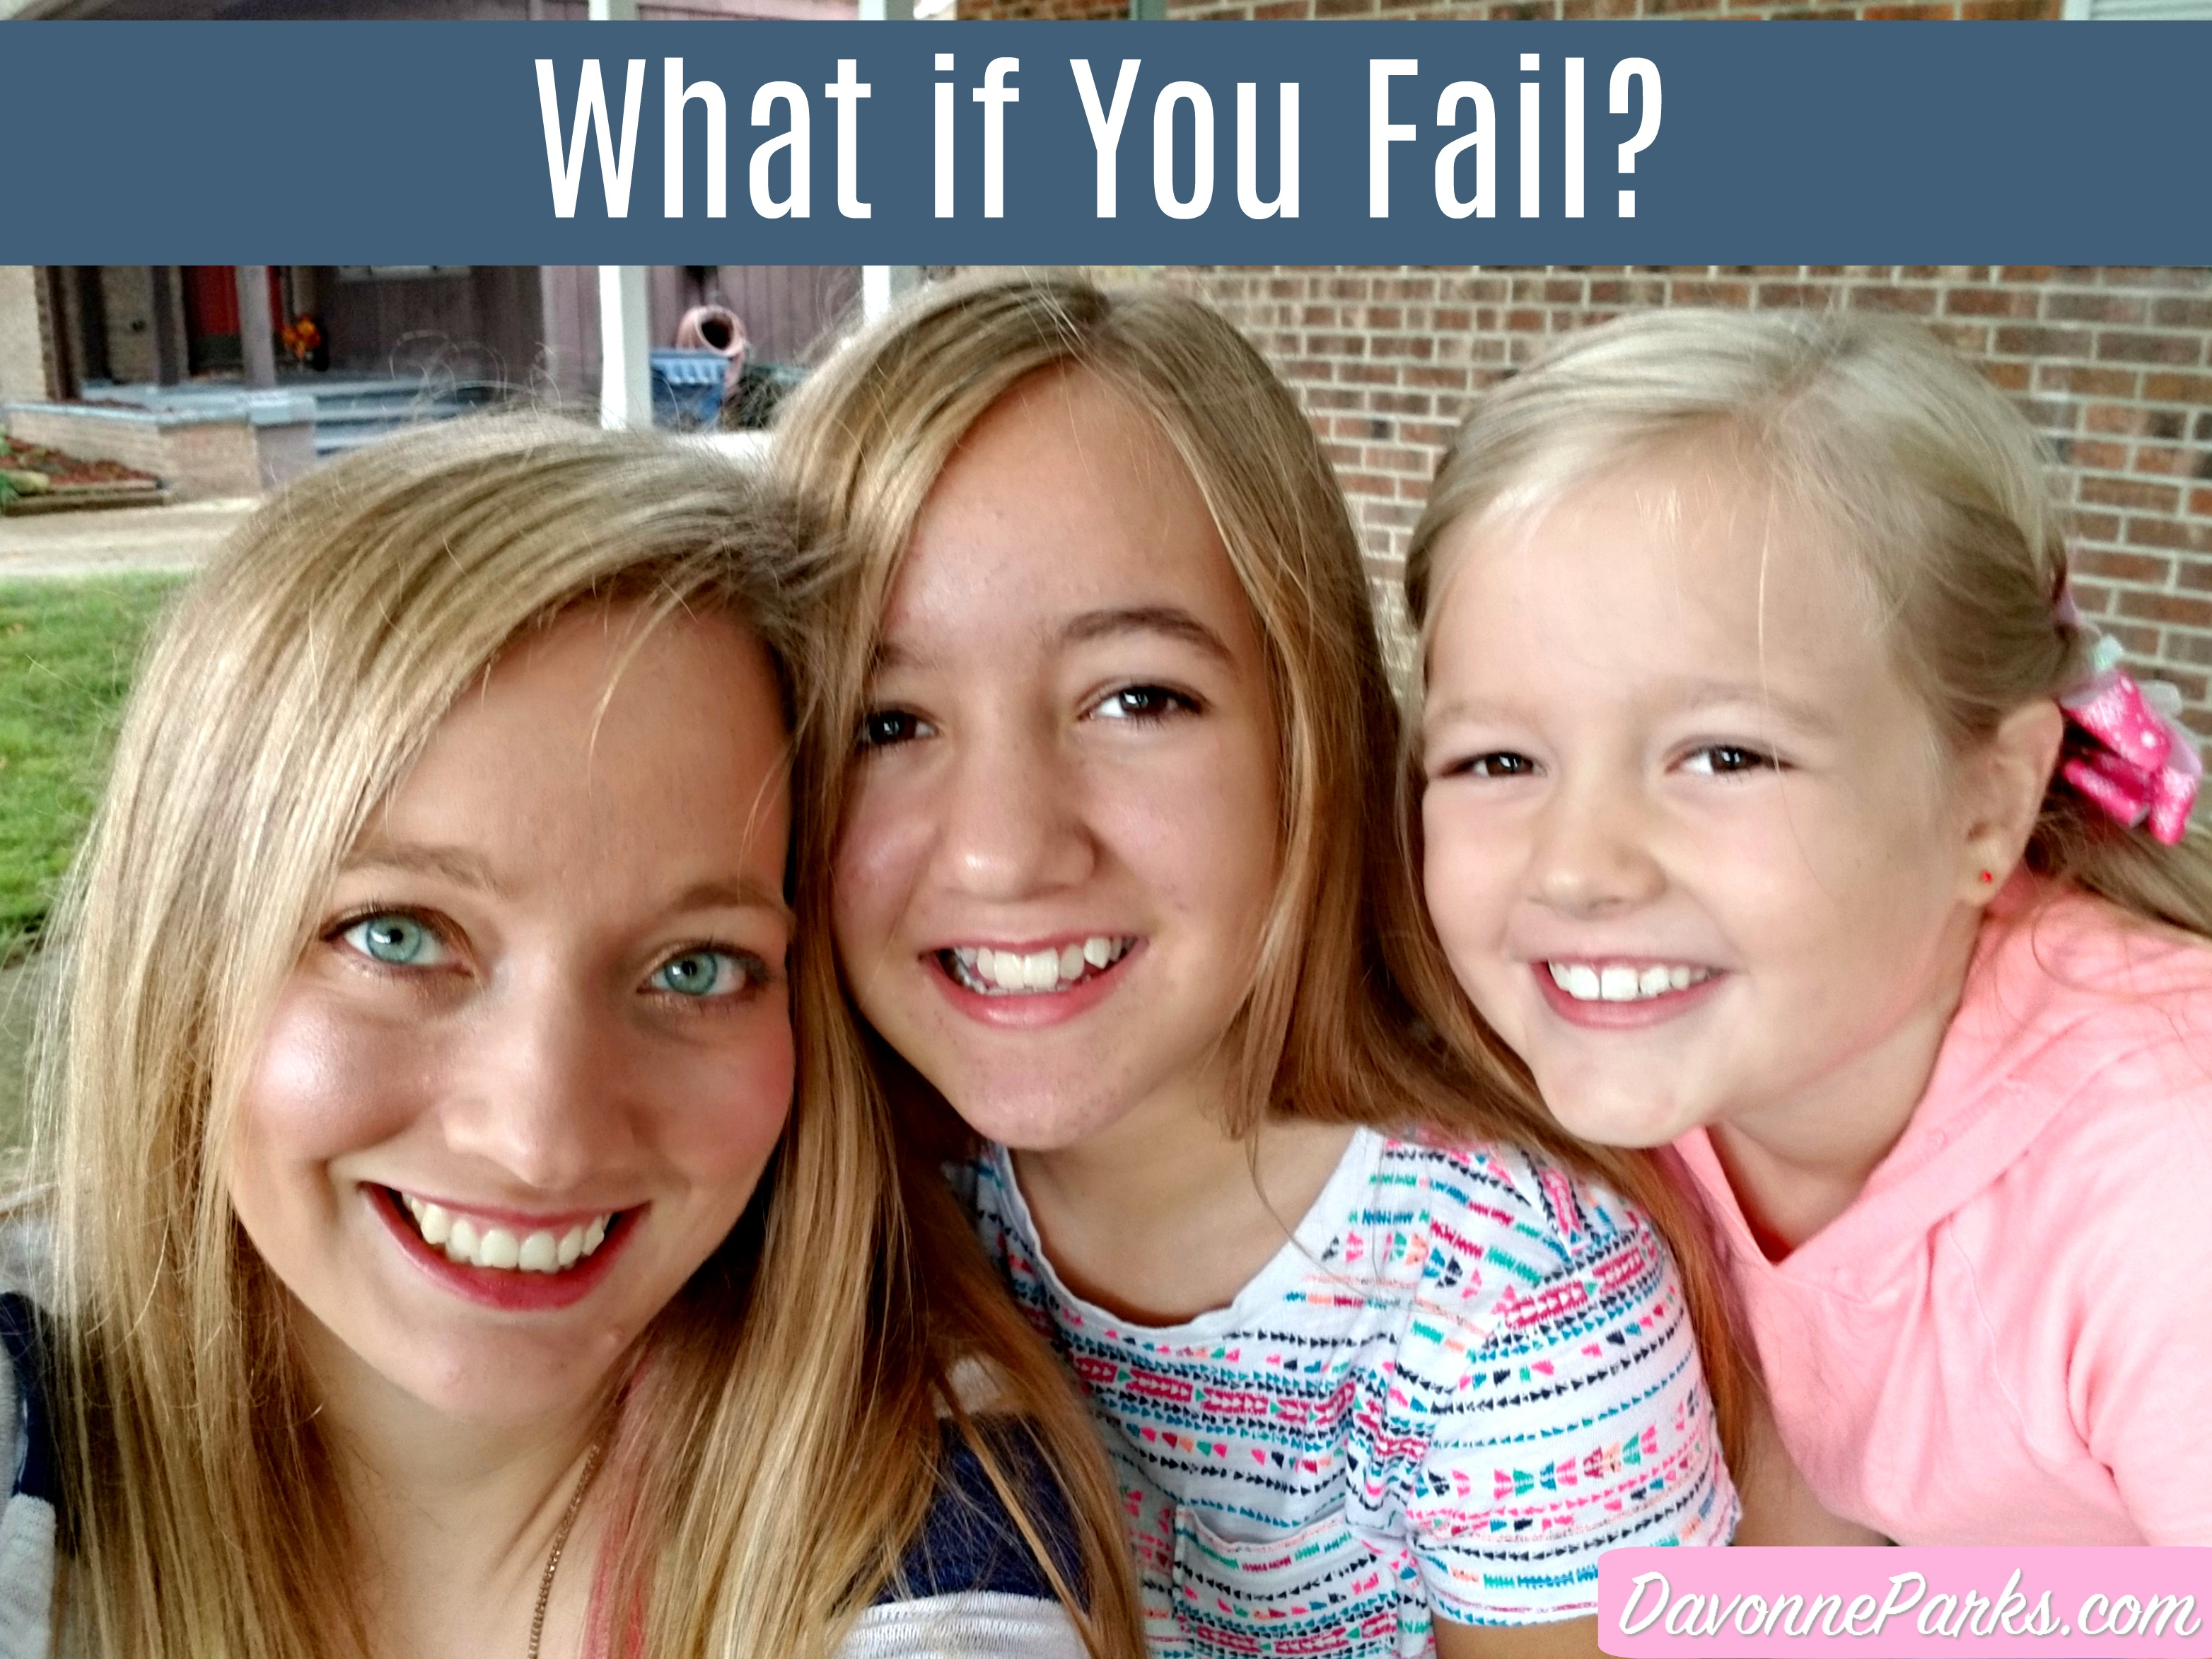 What if You Fail?